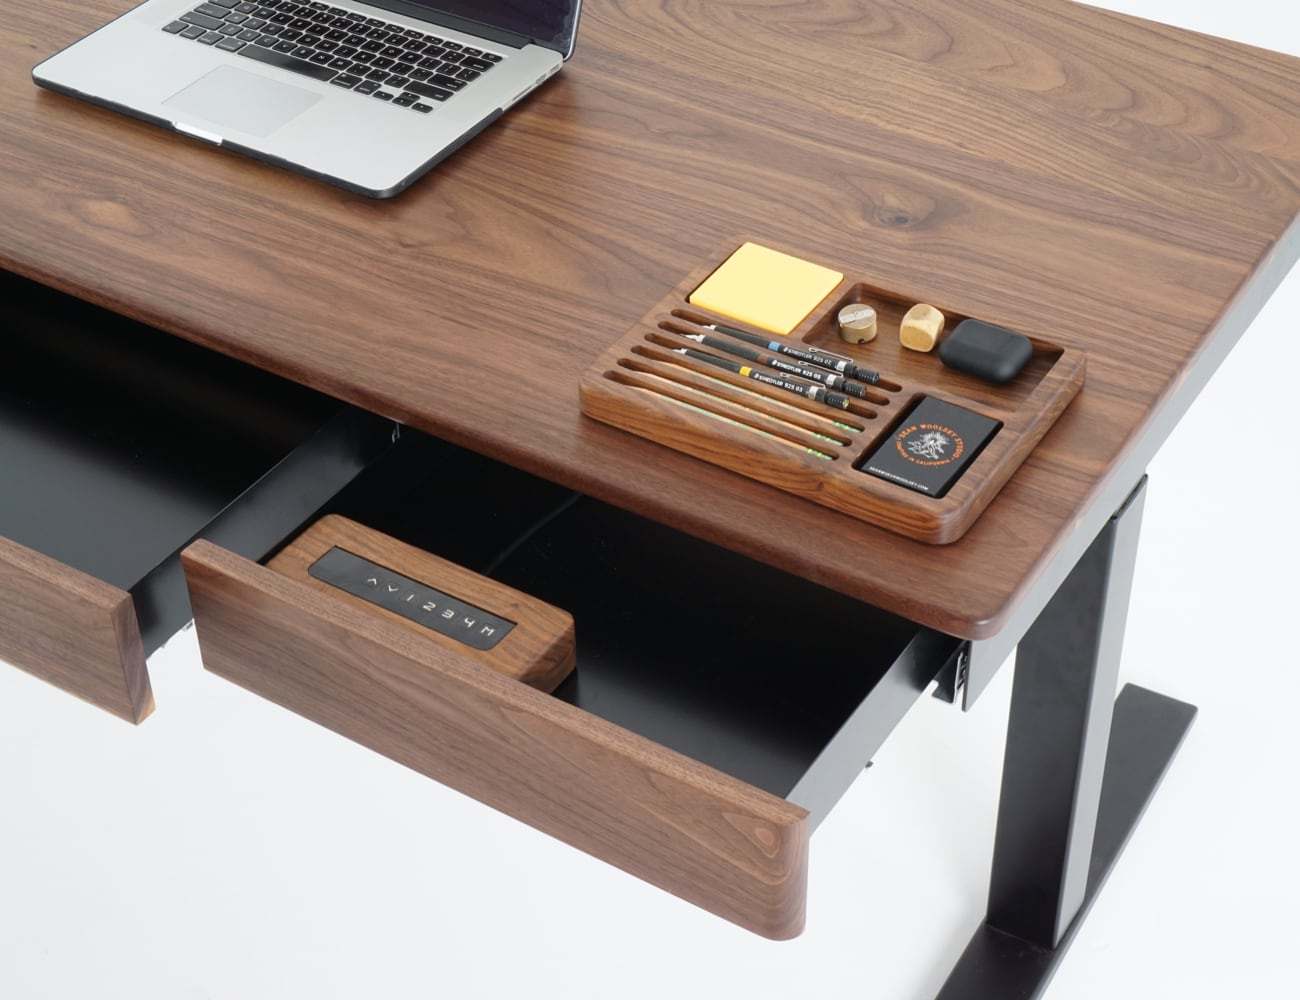 Sean Woolsey Efficiently Designed Smart Desk is the workspace you didn't know you needed